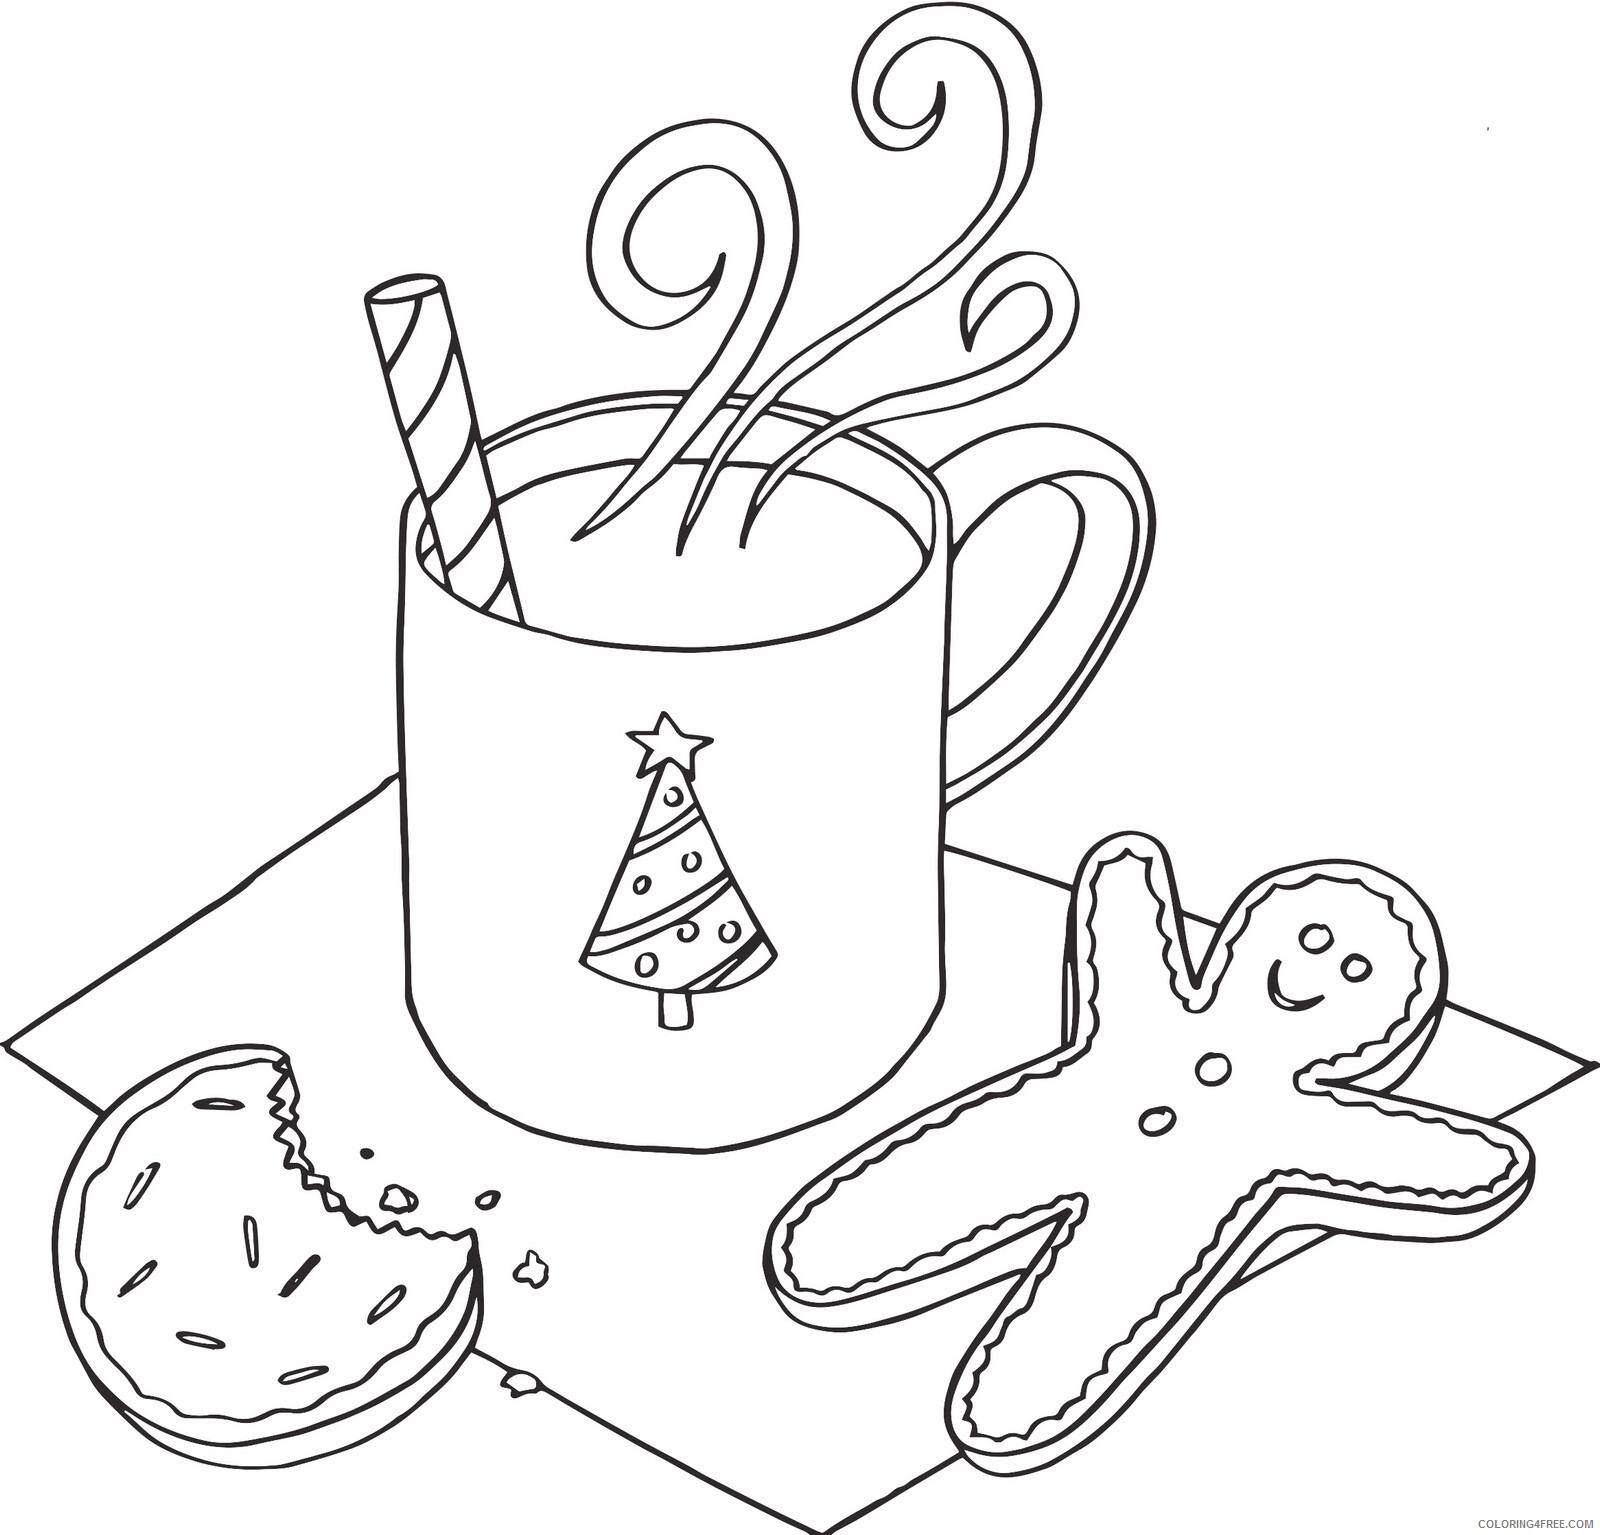 Cookie Coloring Pages for Kids Cookies December Printable 2021 094 Coloring4free